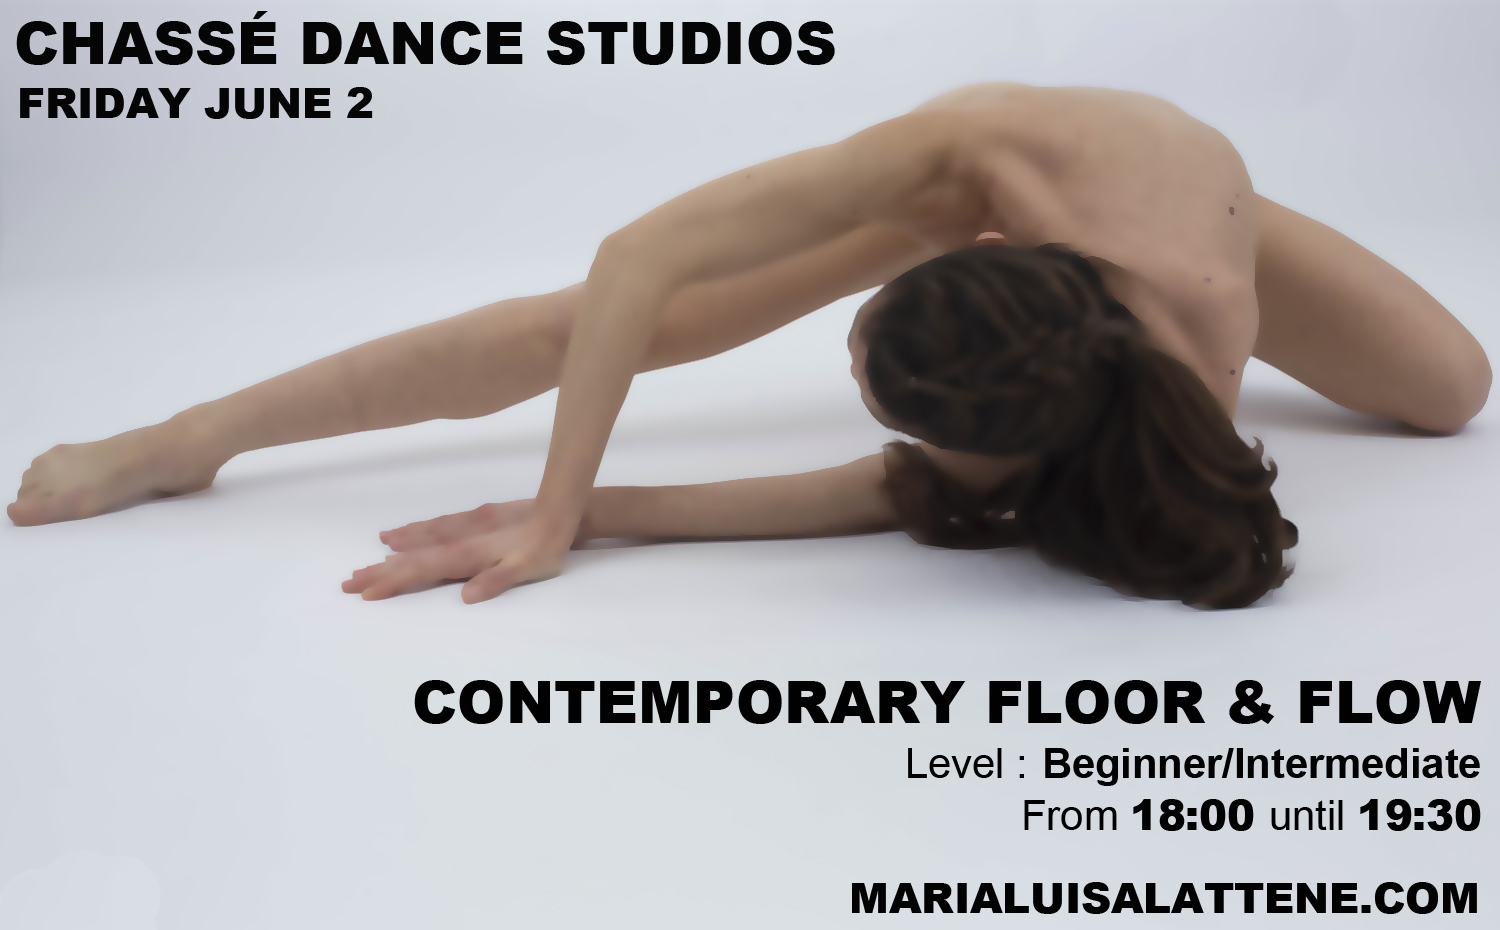 Tonight at Chassé Dance studios come and join me for the floor and flow class, hope to see you all there!